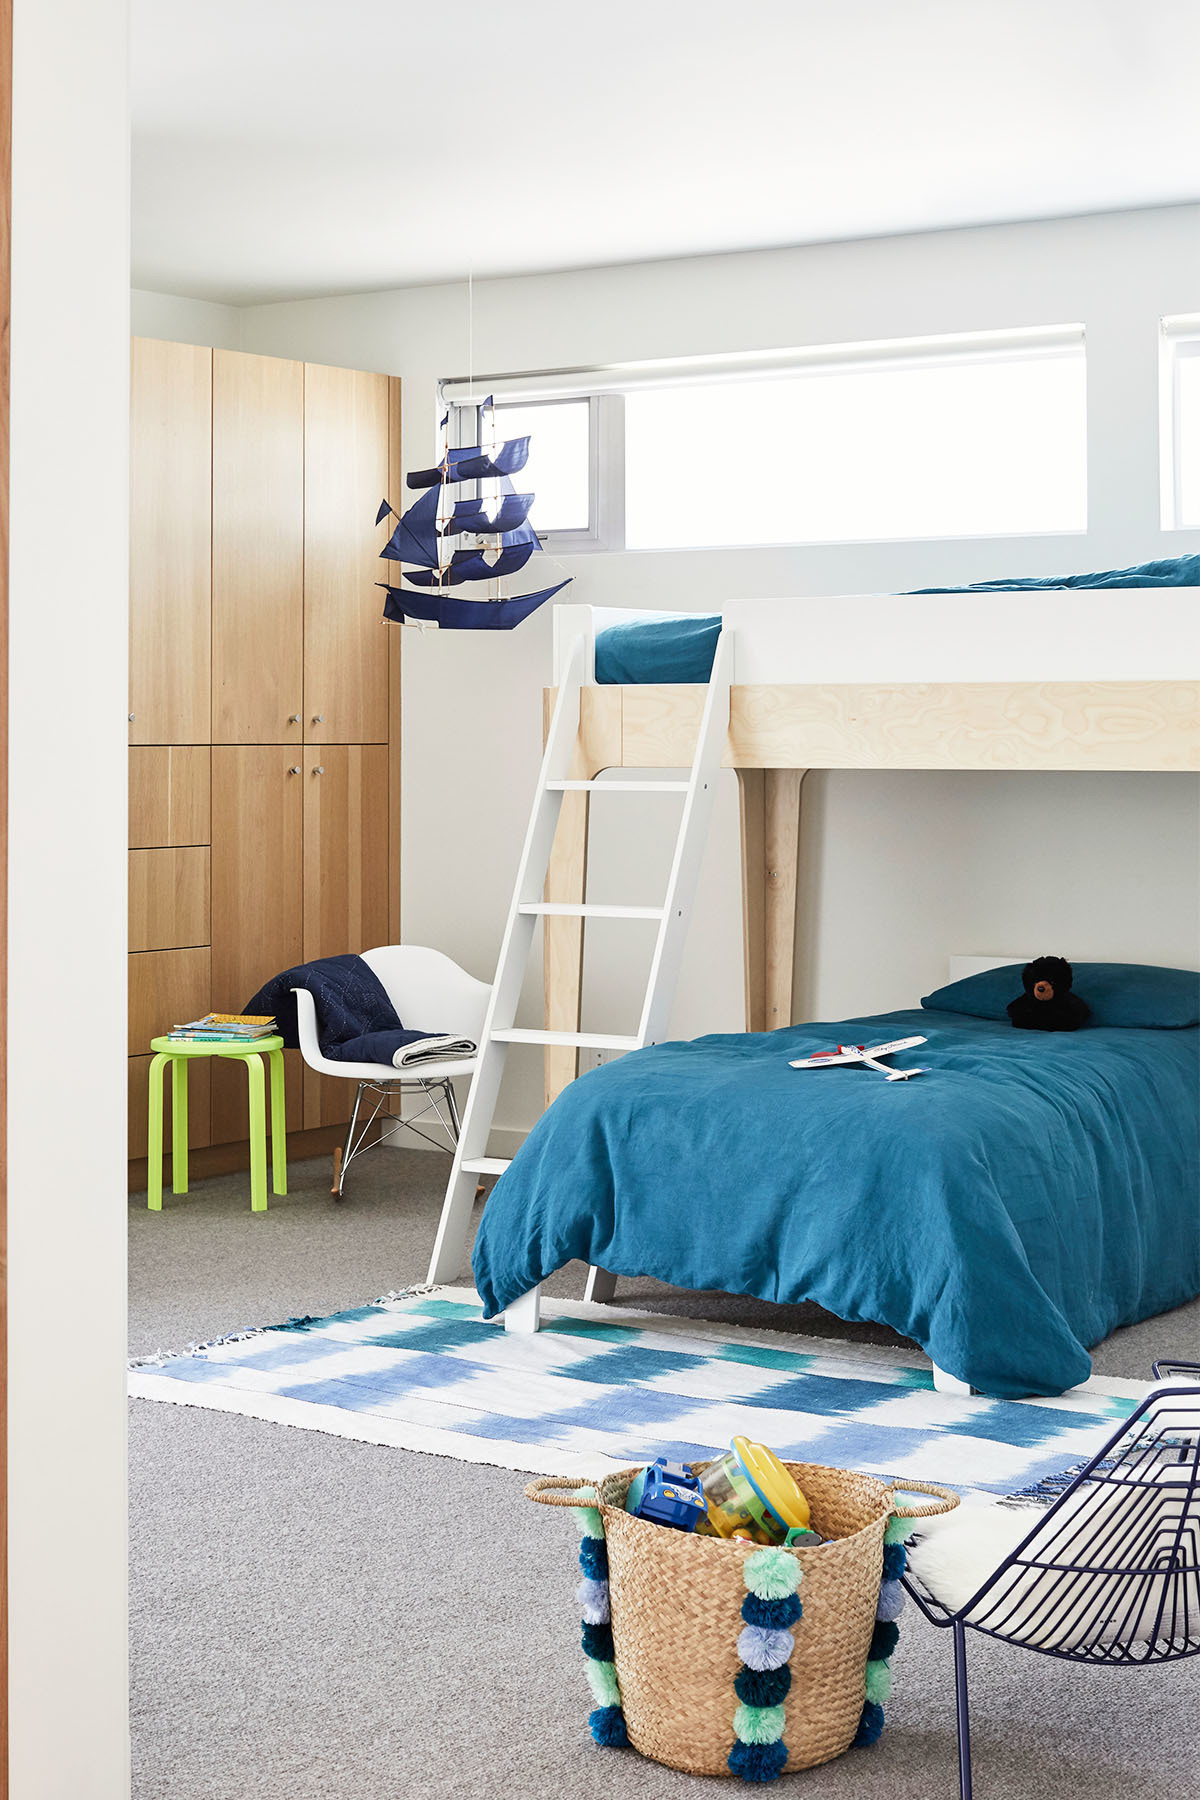 The casual kids room adds a pop of color to the Merrill family beach house. Oeuf Bunk Beds | Caroline Z Hurley Rug | Crate and Barrel Baskets | DWR Chair | Marshall Laplante Art | Oeuf Ladder | LinenMe Bedding | IKEA Bedside Table | Crate and Barrel Chair.